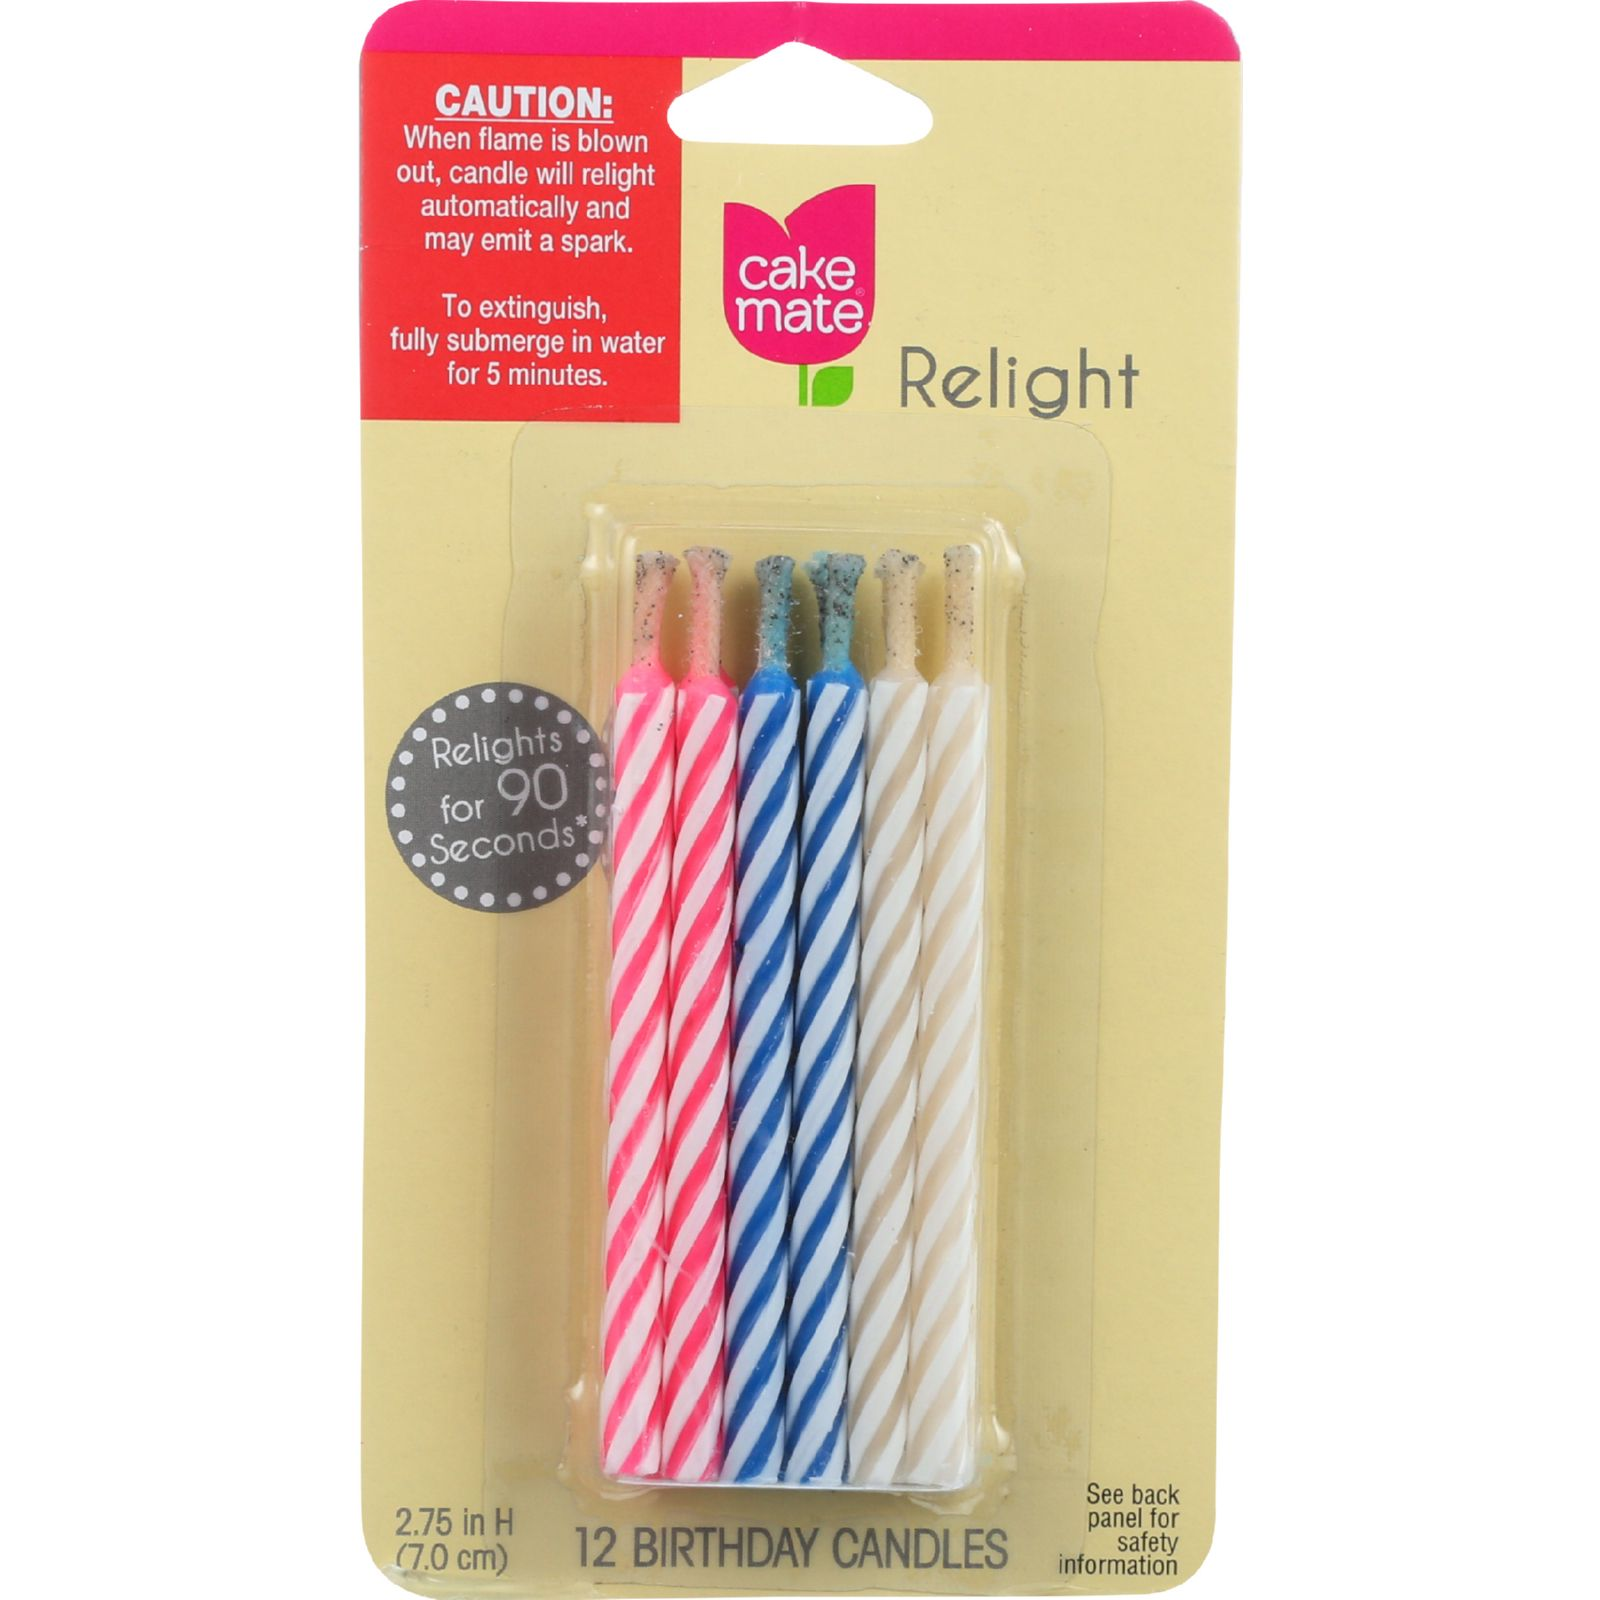 Signature Brands Cake Mate Birthday Candles 12 ea